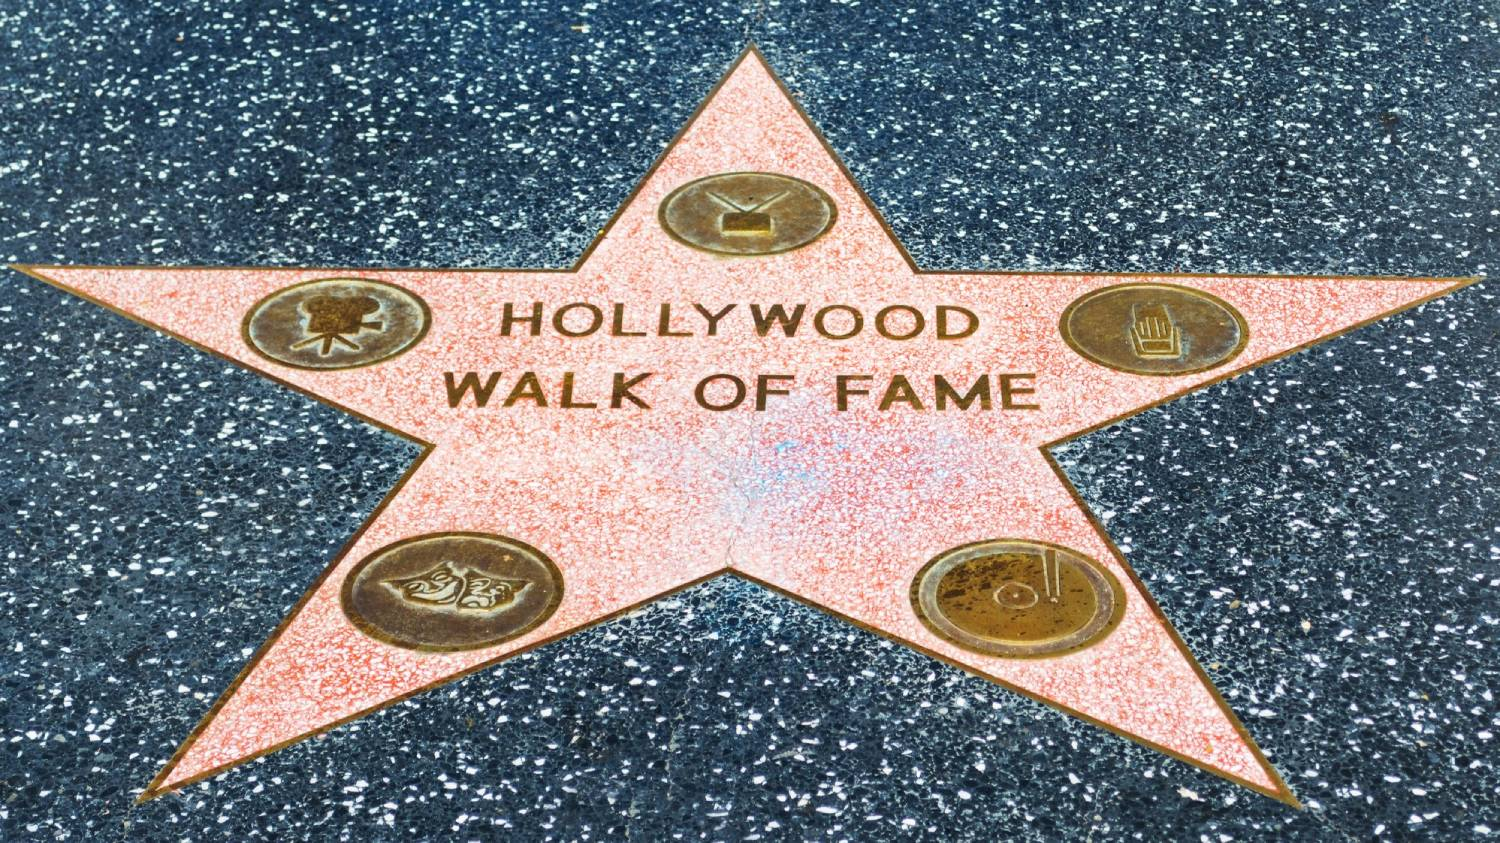 Hollywood Walk of Fame - Things To Do In Los Angeles